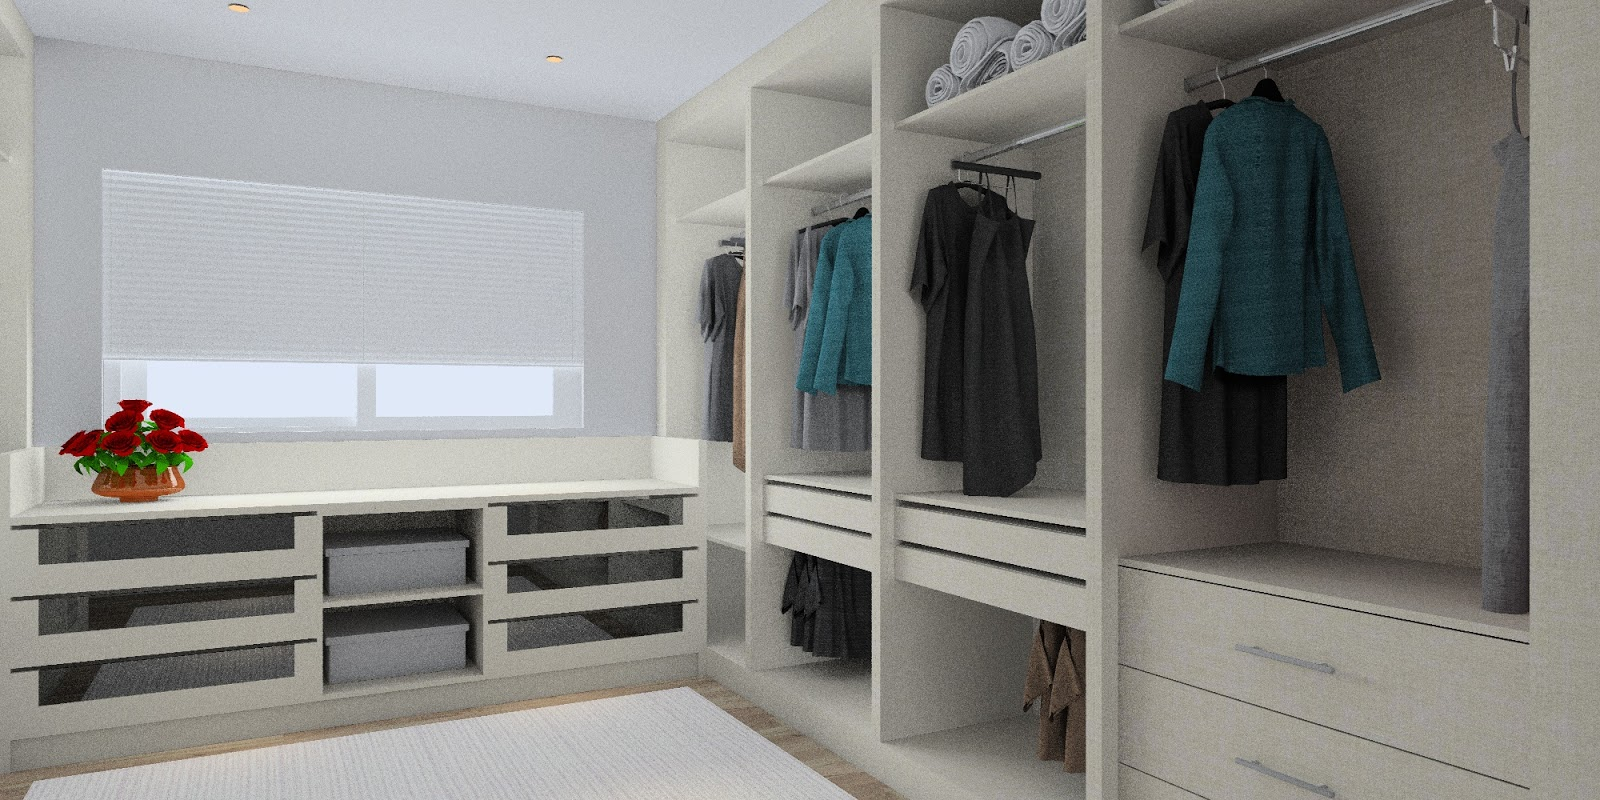 Simple dry kitchen design - The Living Hall To Dry Kitchen Area